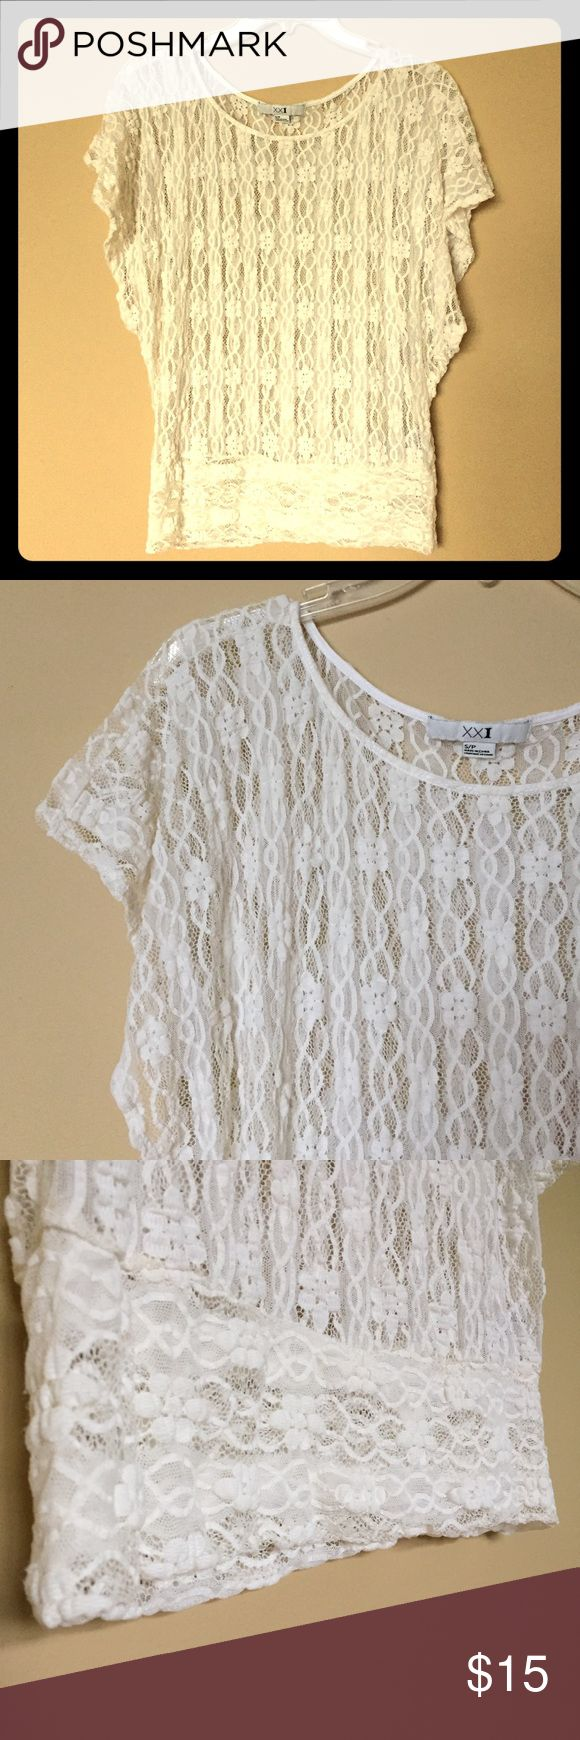 """🎀Cute F21 Floral Lace Shirt!🎀 Super cute sheer floral lace blouse from Forever 21! Off-white/cream, batwing short sleeves. Comfy & stretchy! Great with a cami! Small/Petite. Very good, gently loved condition.🔸Material: 97% Nylon, 3% Spandex.🔸Measurements: Bust: 20"""" flat/40"""" full. Length from shoulder: 23"""".💃Offers Welcome & Bundling Discounts Available!💃 Forever 21 Tops Blouses"""